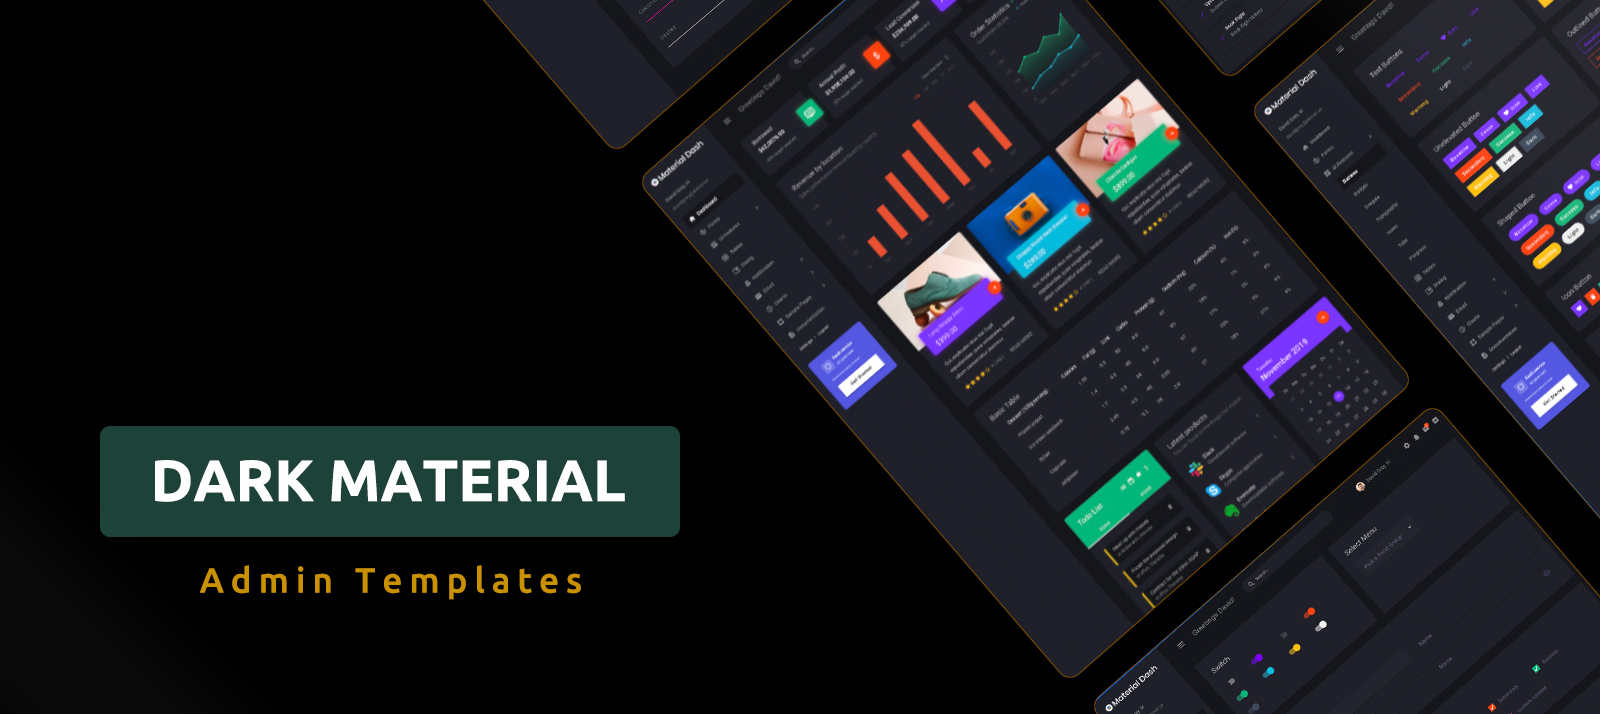 10+ Dark Material Design Admin Templates You Do Not Want To Miss Out in 2020